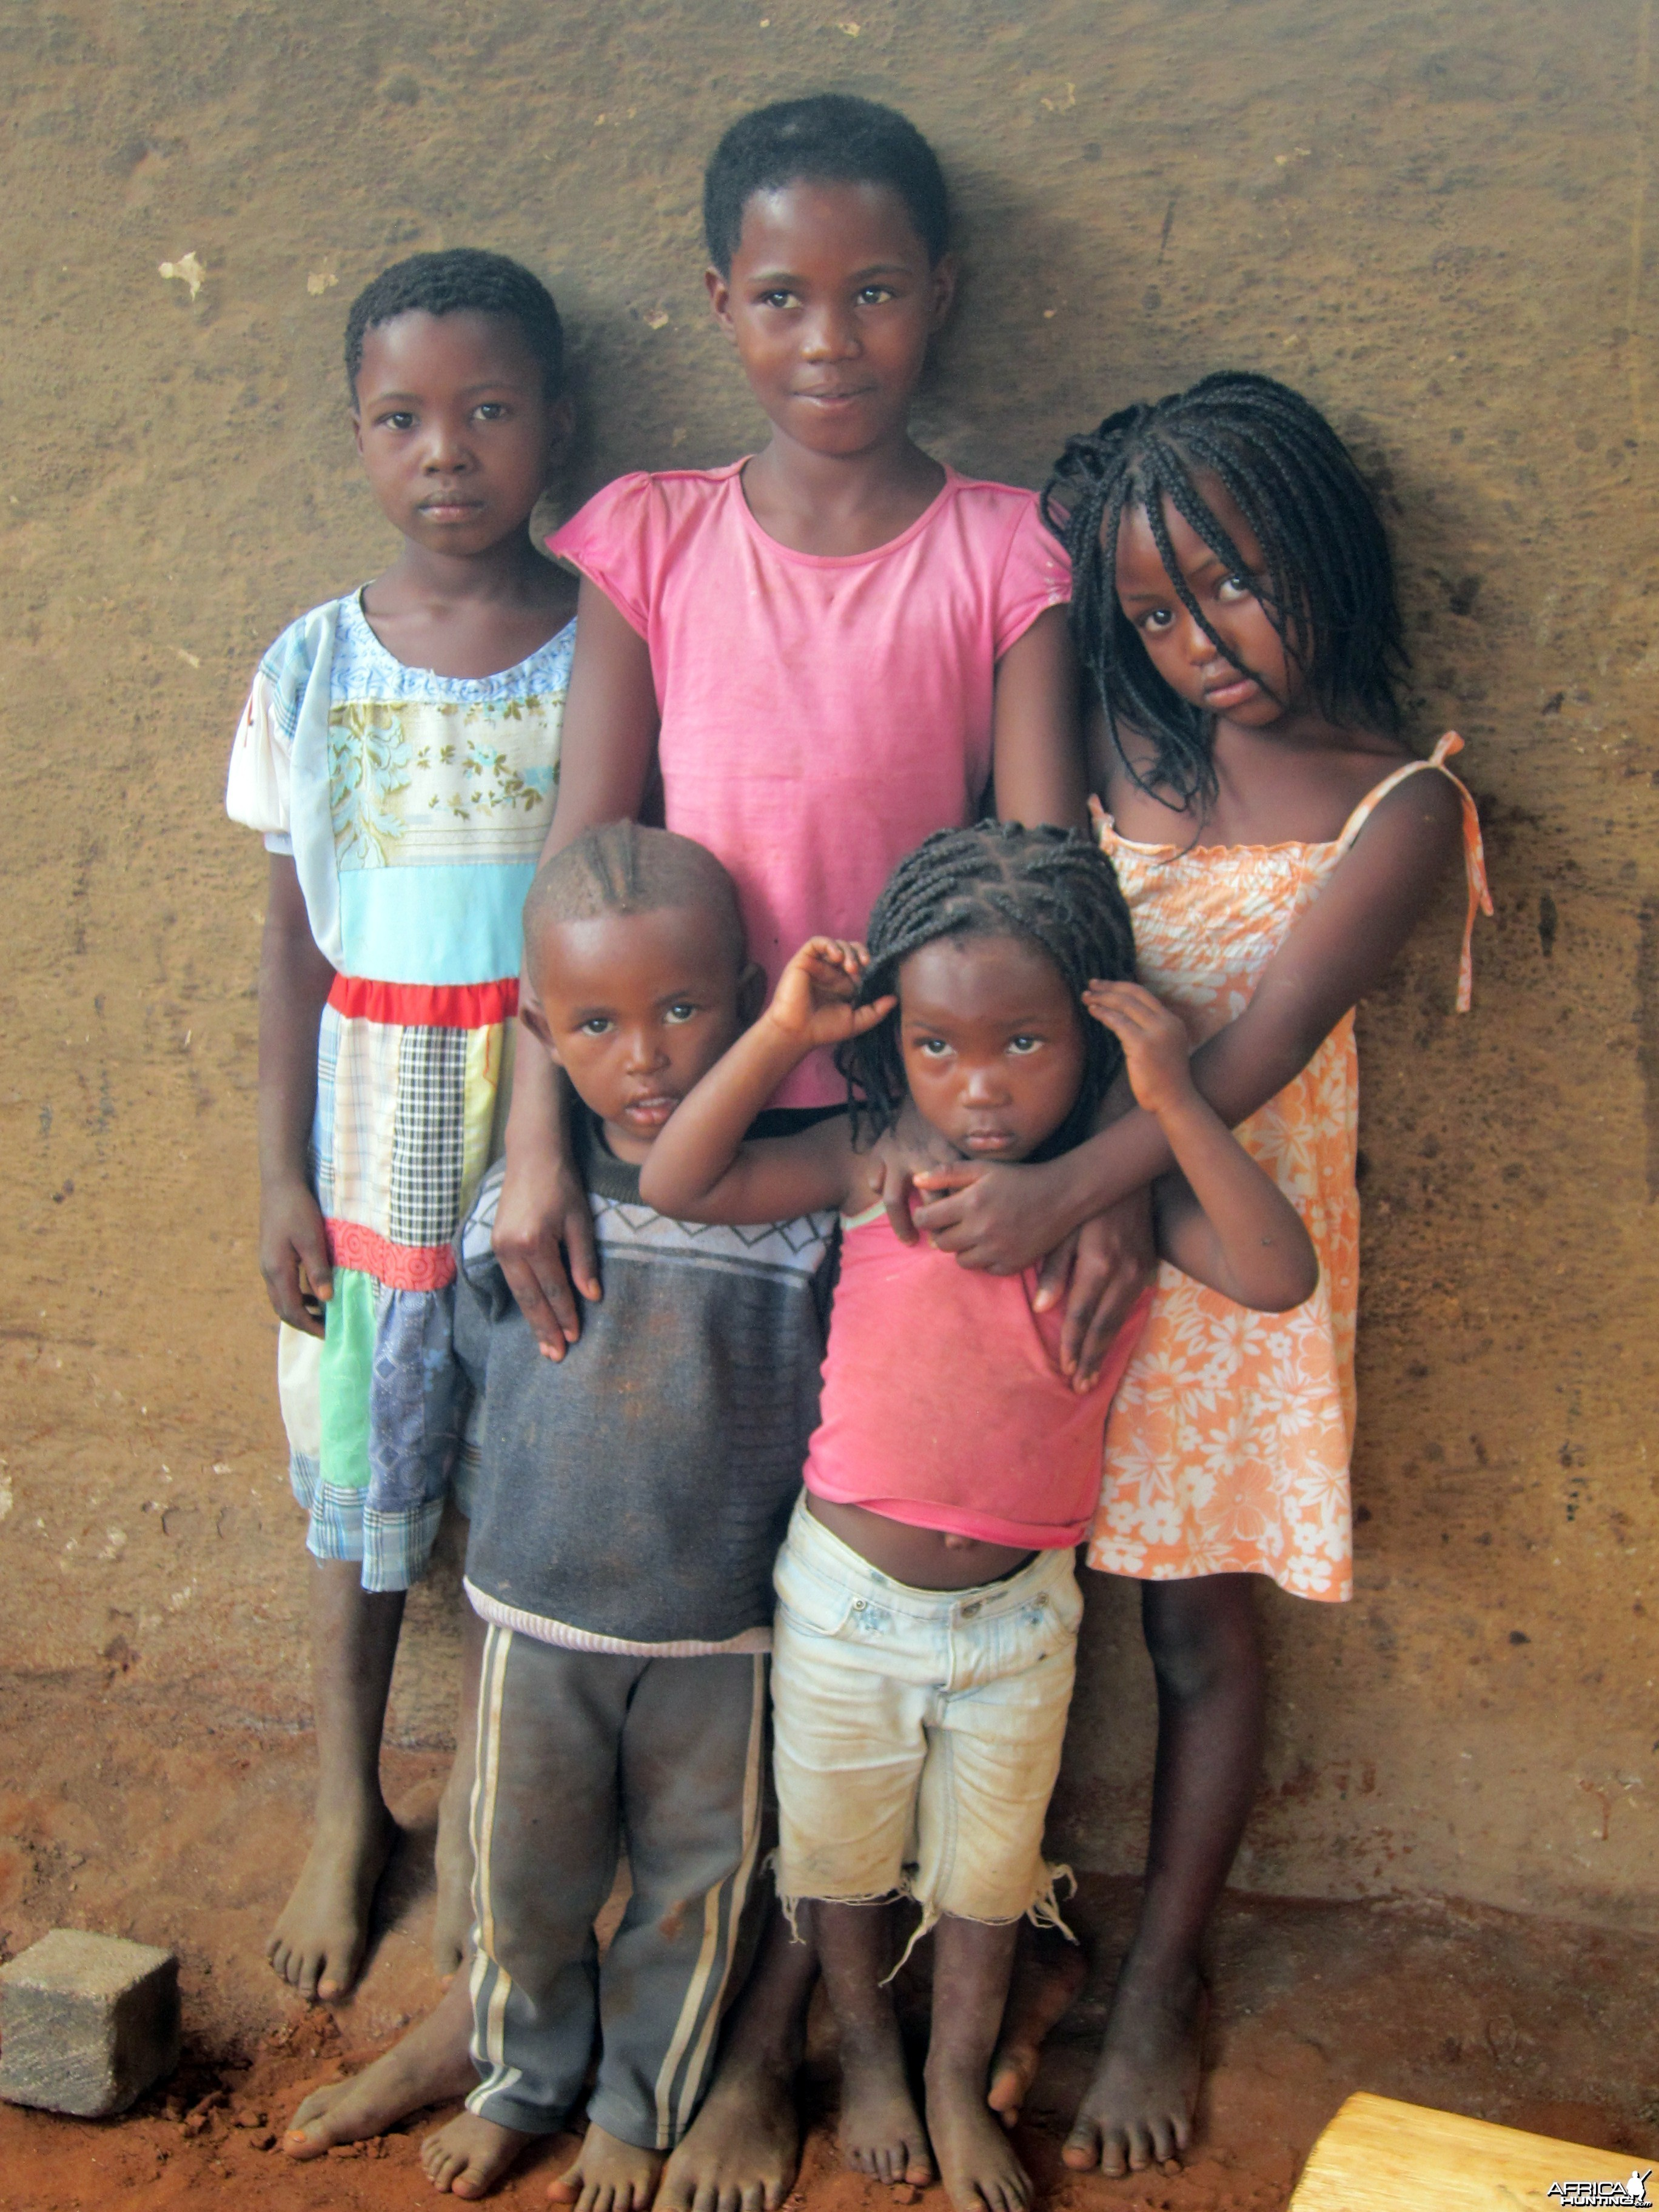 Children Namibia